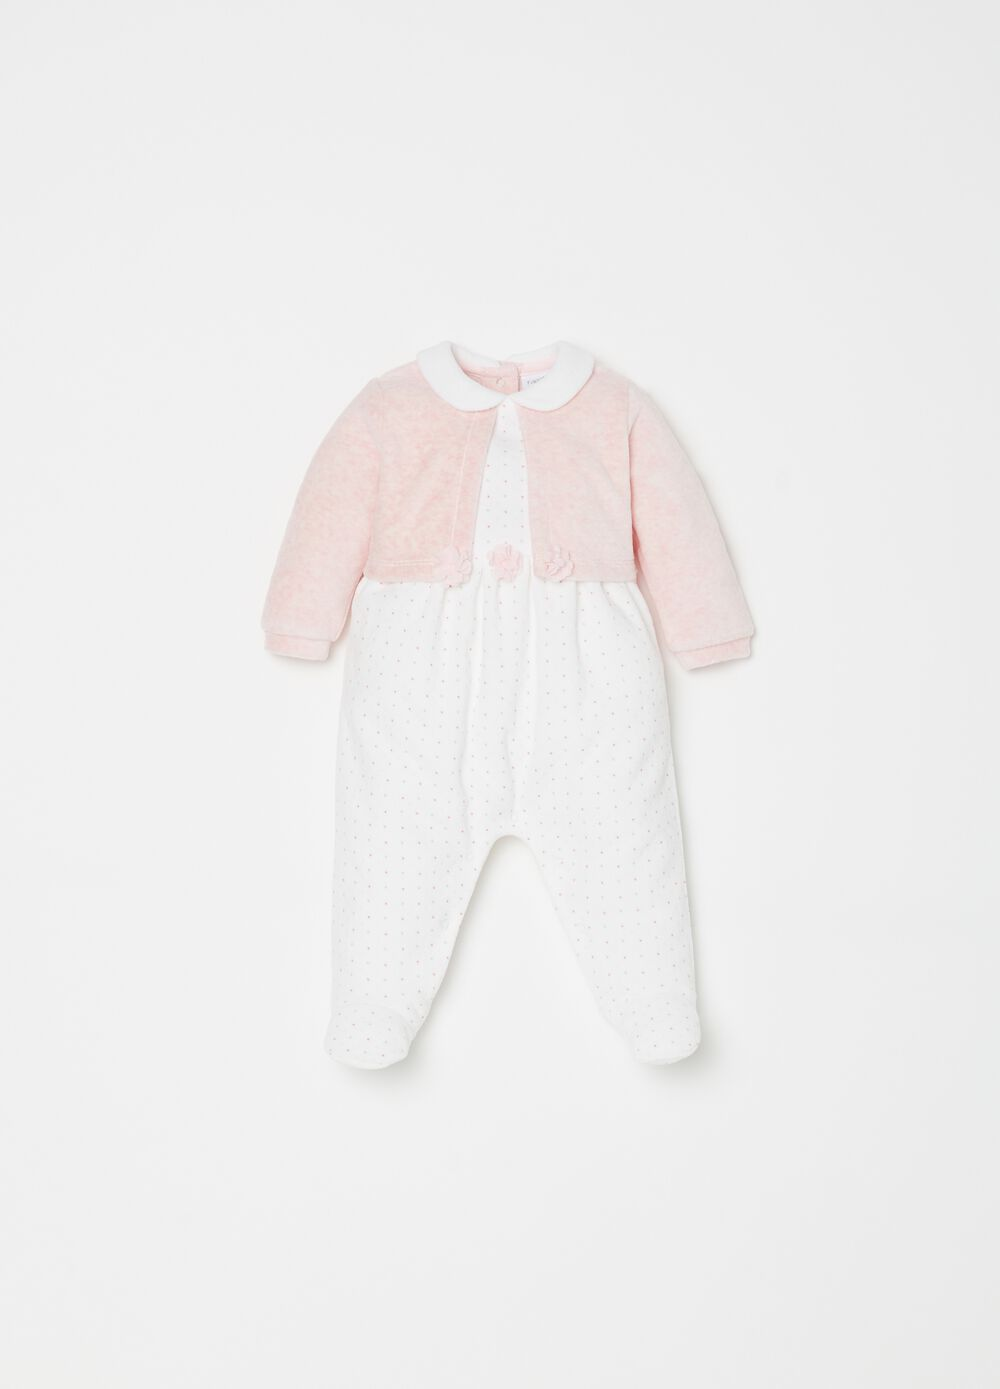 Micro dot patterned onesie with feet